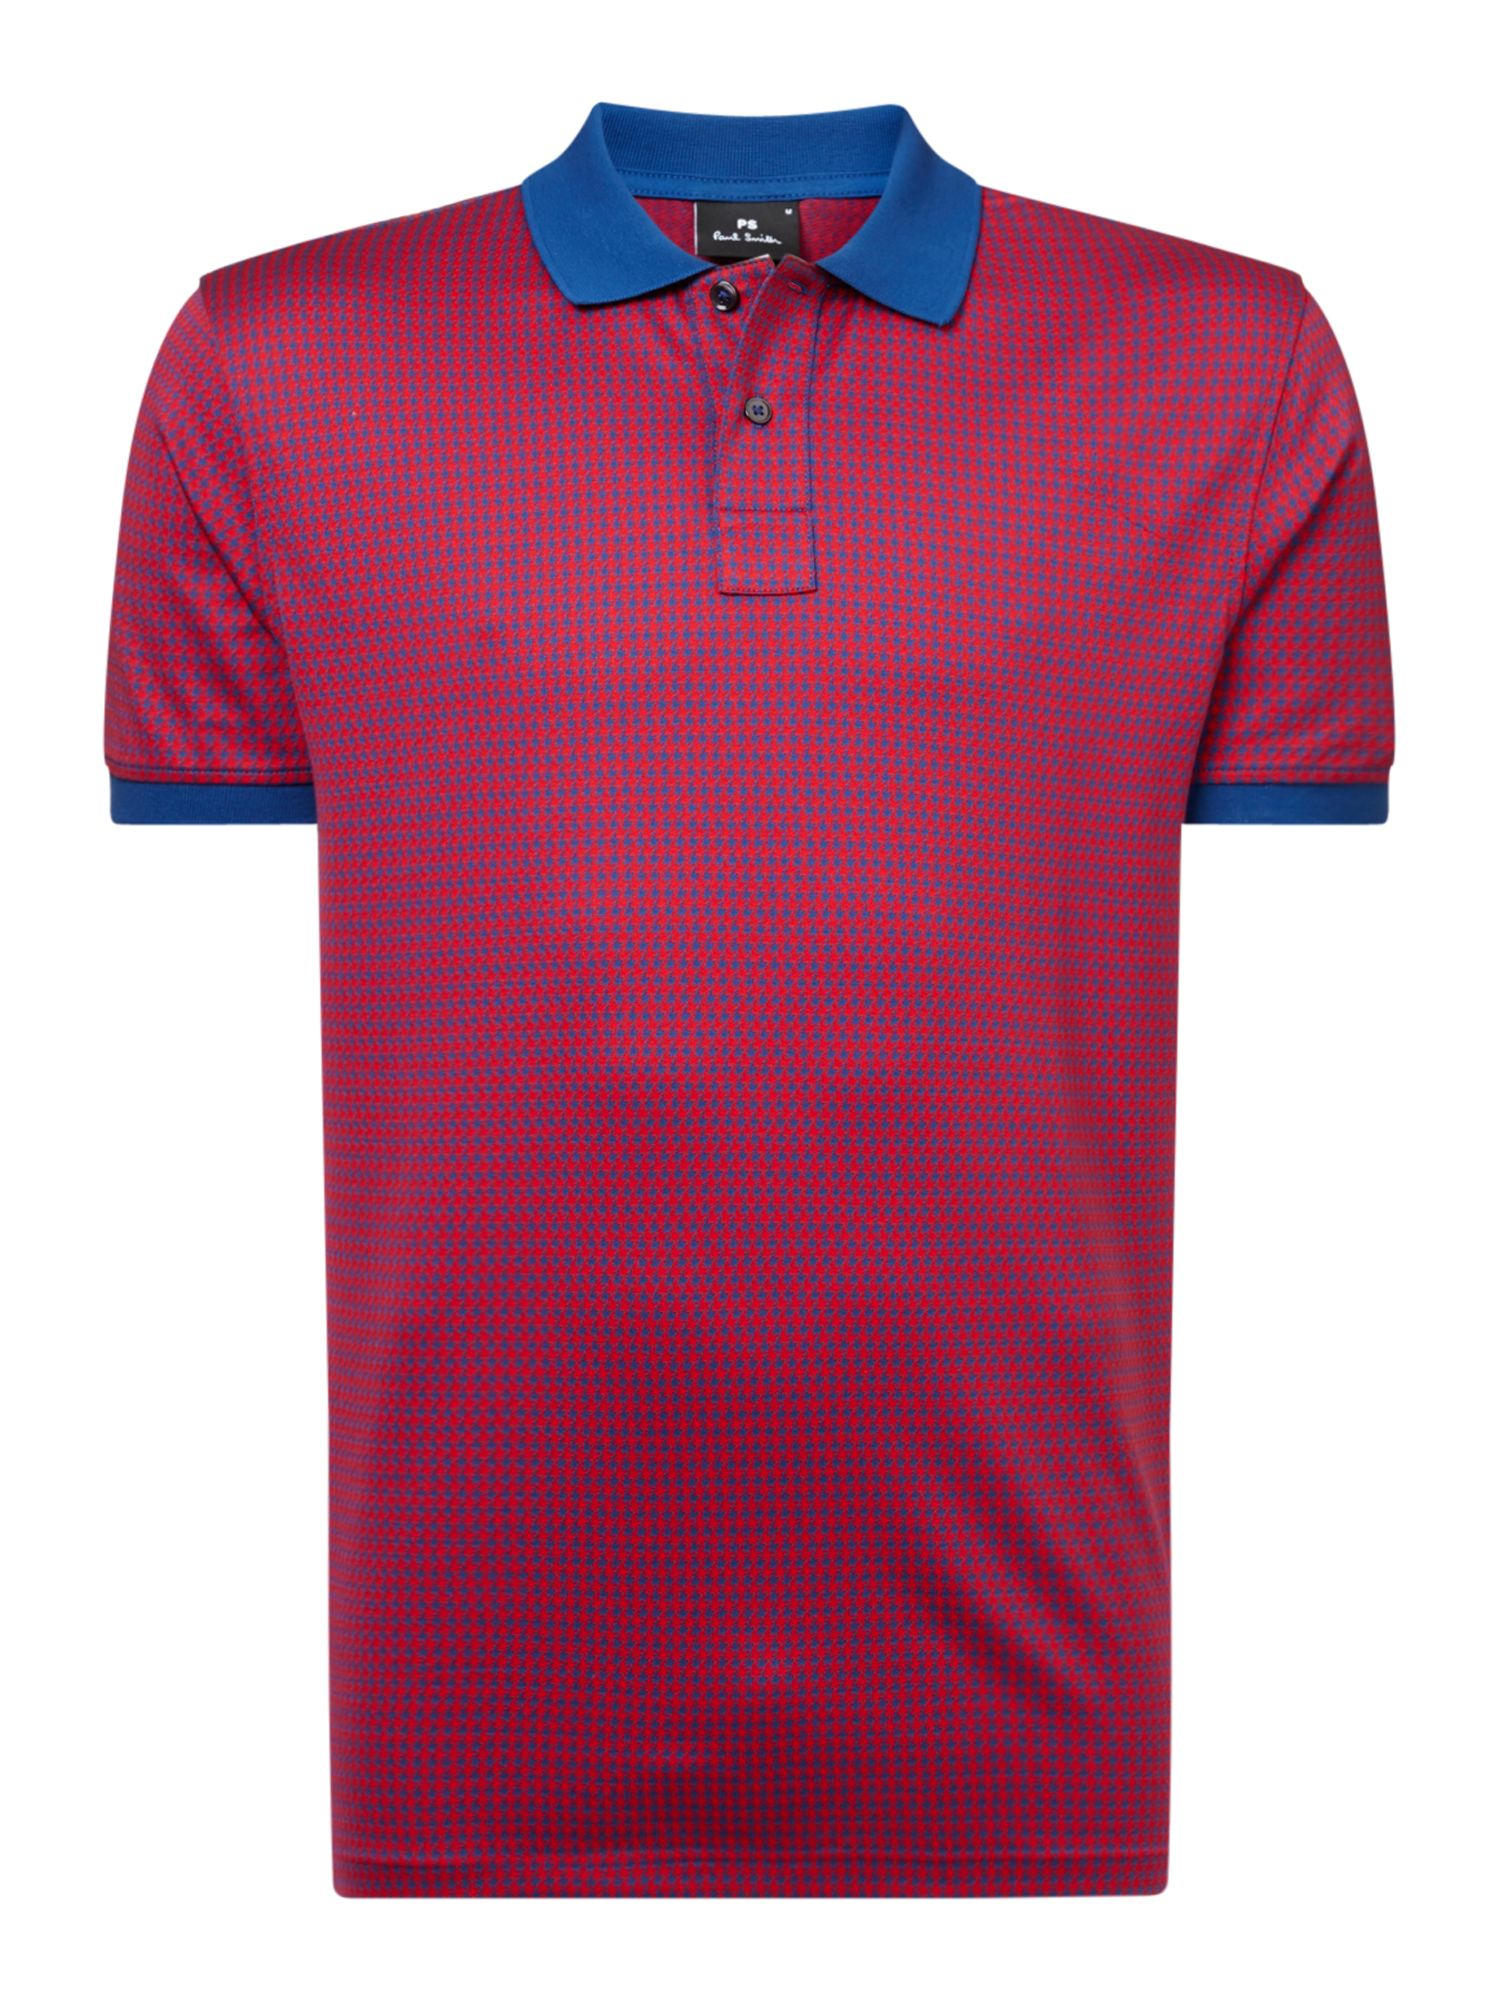 Dog Tooth Polo Shirt by Ps By Paul Smith